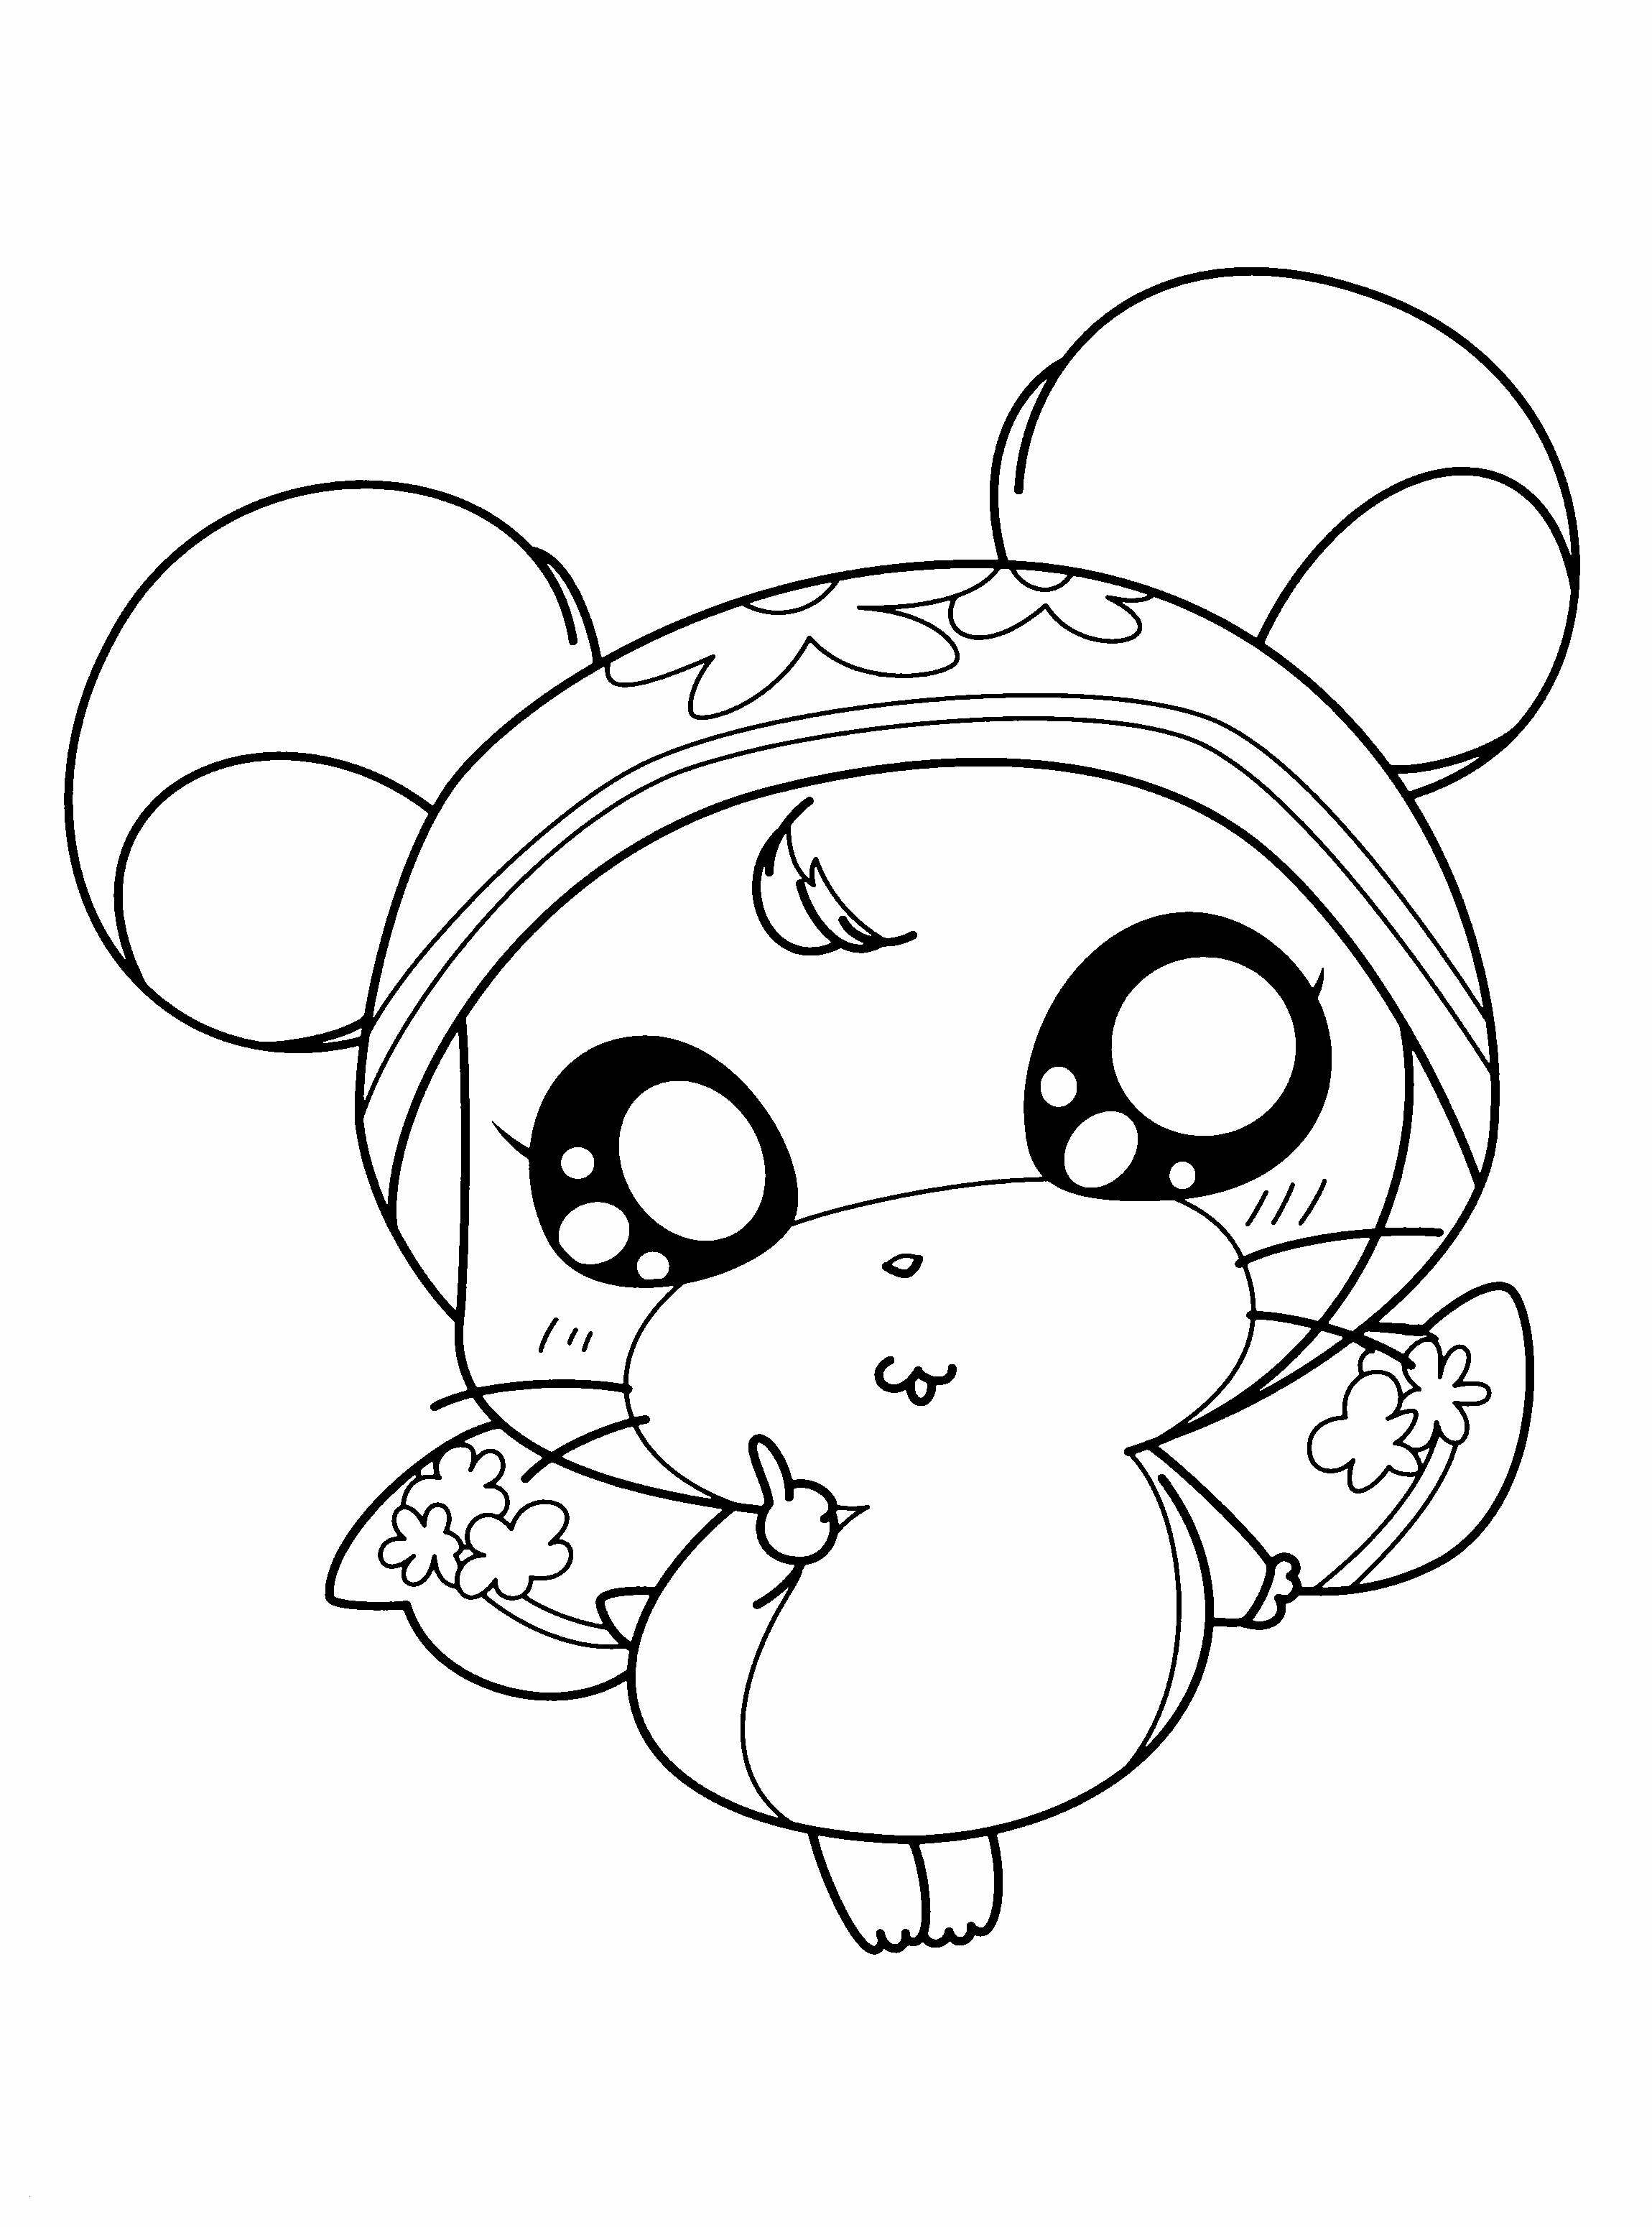 Gumball Coloring Pages  Gallery 19b - Save it to your computer